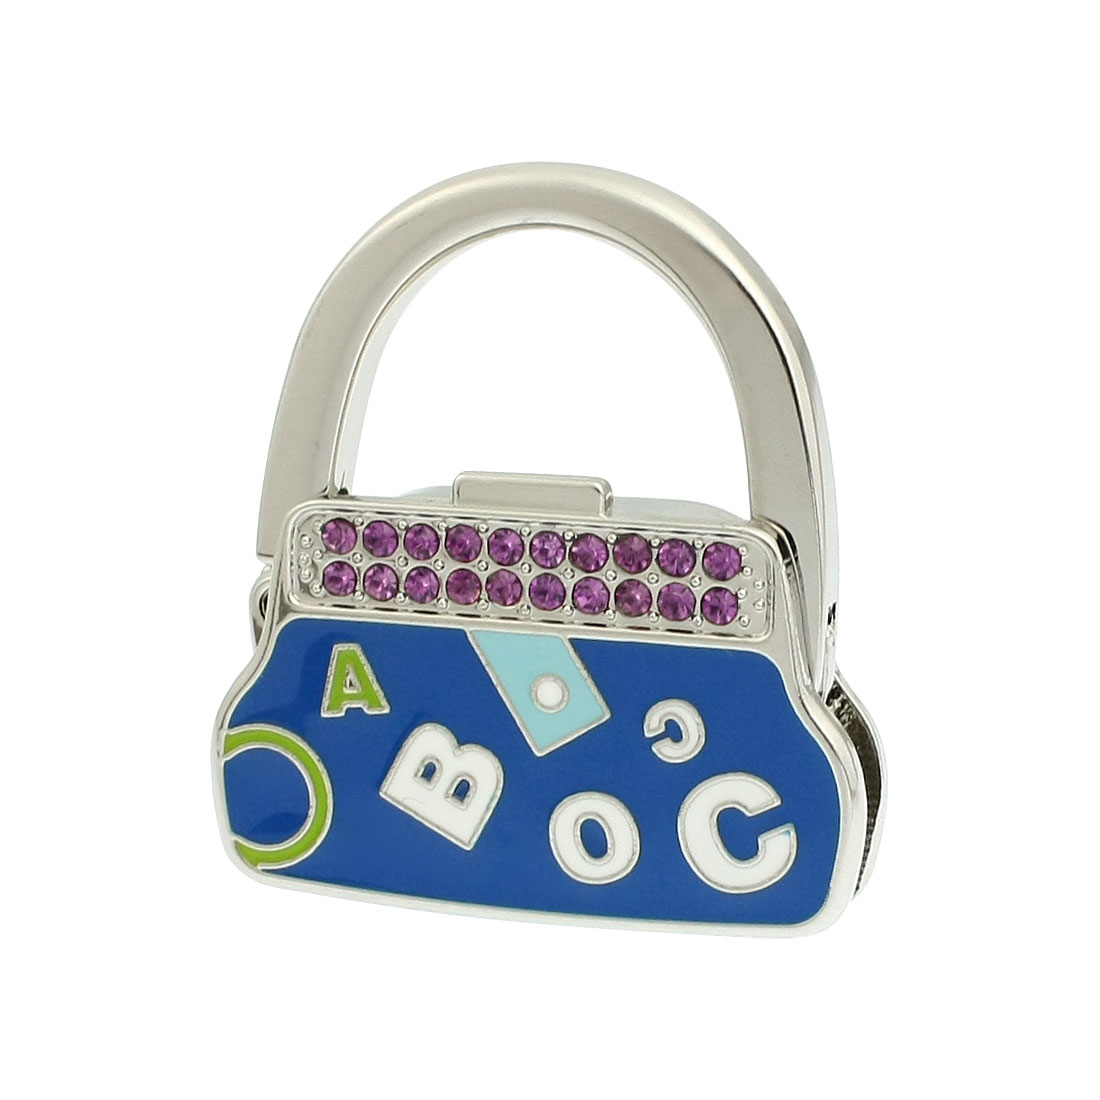 Glitter Rhinestone Letter Pattern Blue Handbag Purse Bag Foldable Hook Hanger